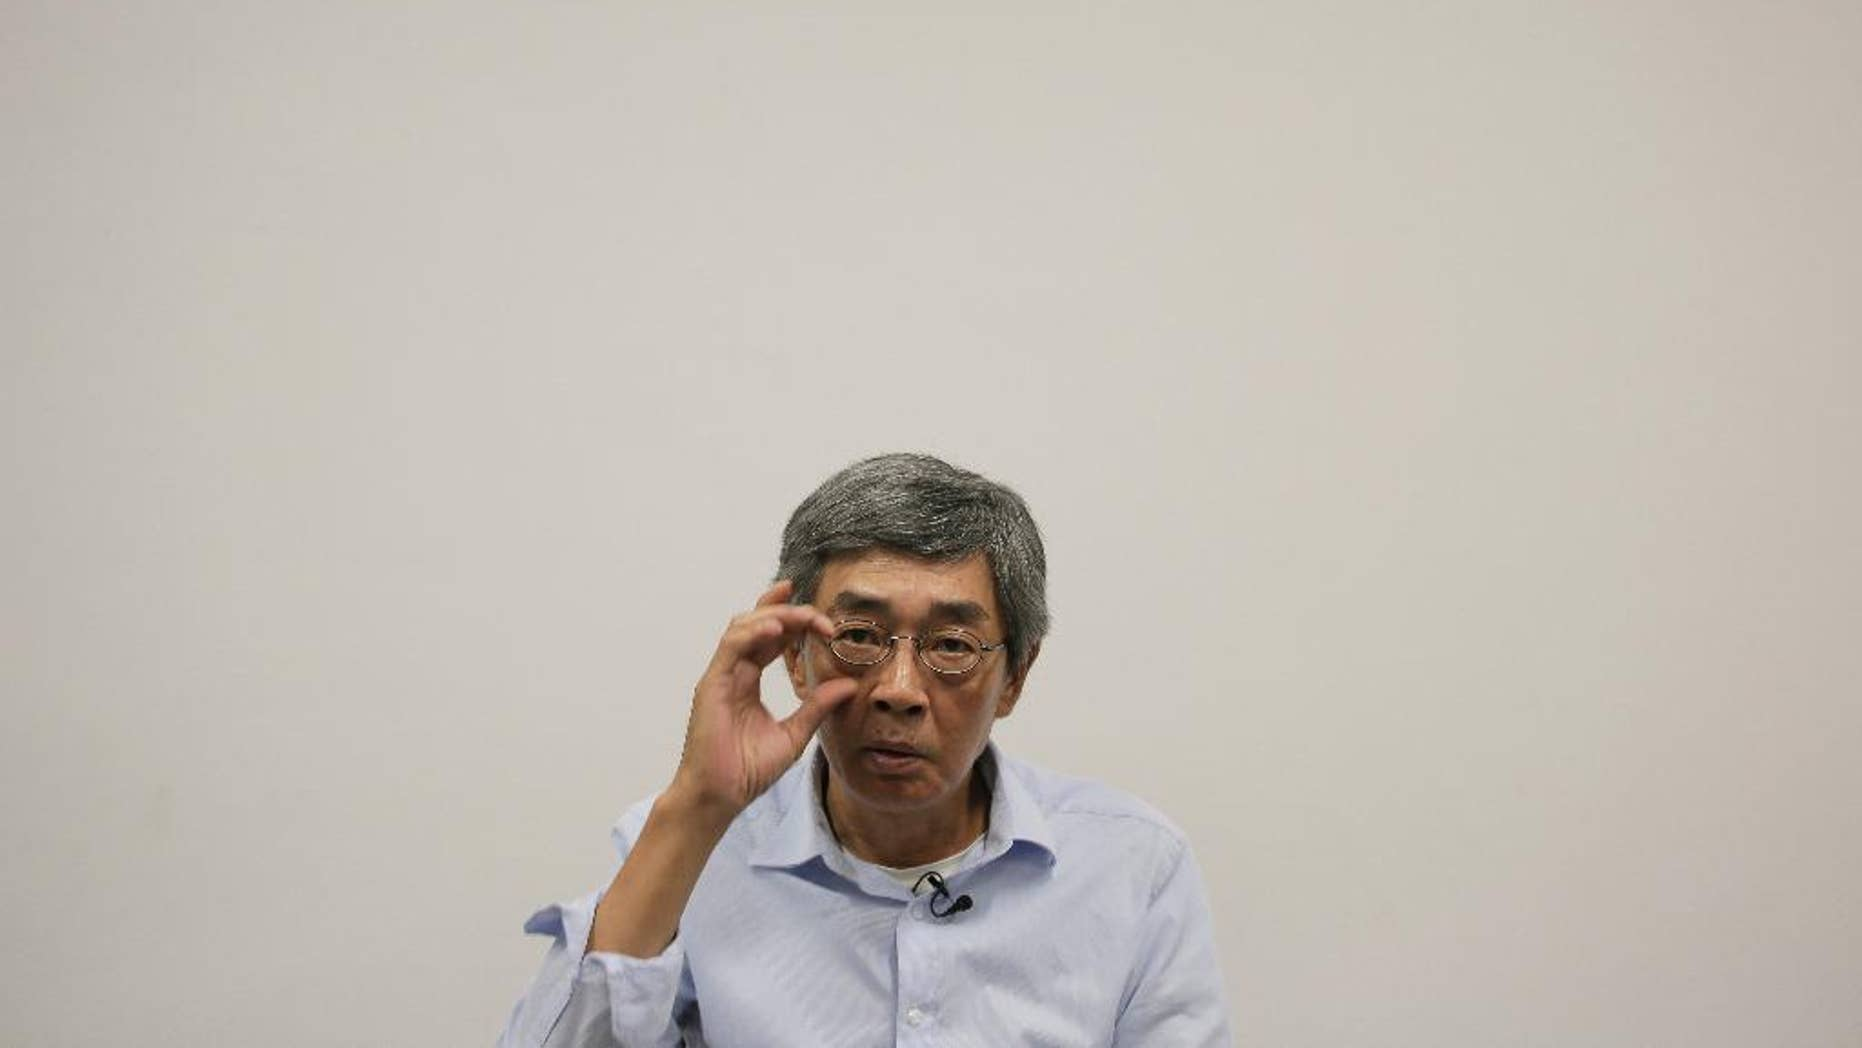 In this Sunday, June 19, 2016 photo, Hong Kong bookseller Lam Wing-kee reacts during an interview in Hong Kong. Hong Kong officials say there's little chance Lam, who is wanted in mainland China, would be sent back after mainland authorities threatened him with tougher punishment if he didn't return. (AP Photo/Vincent Yu)